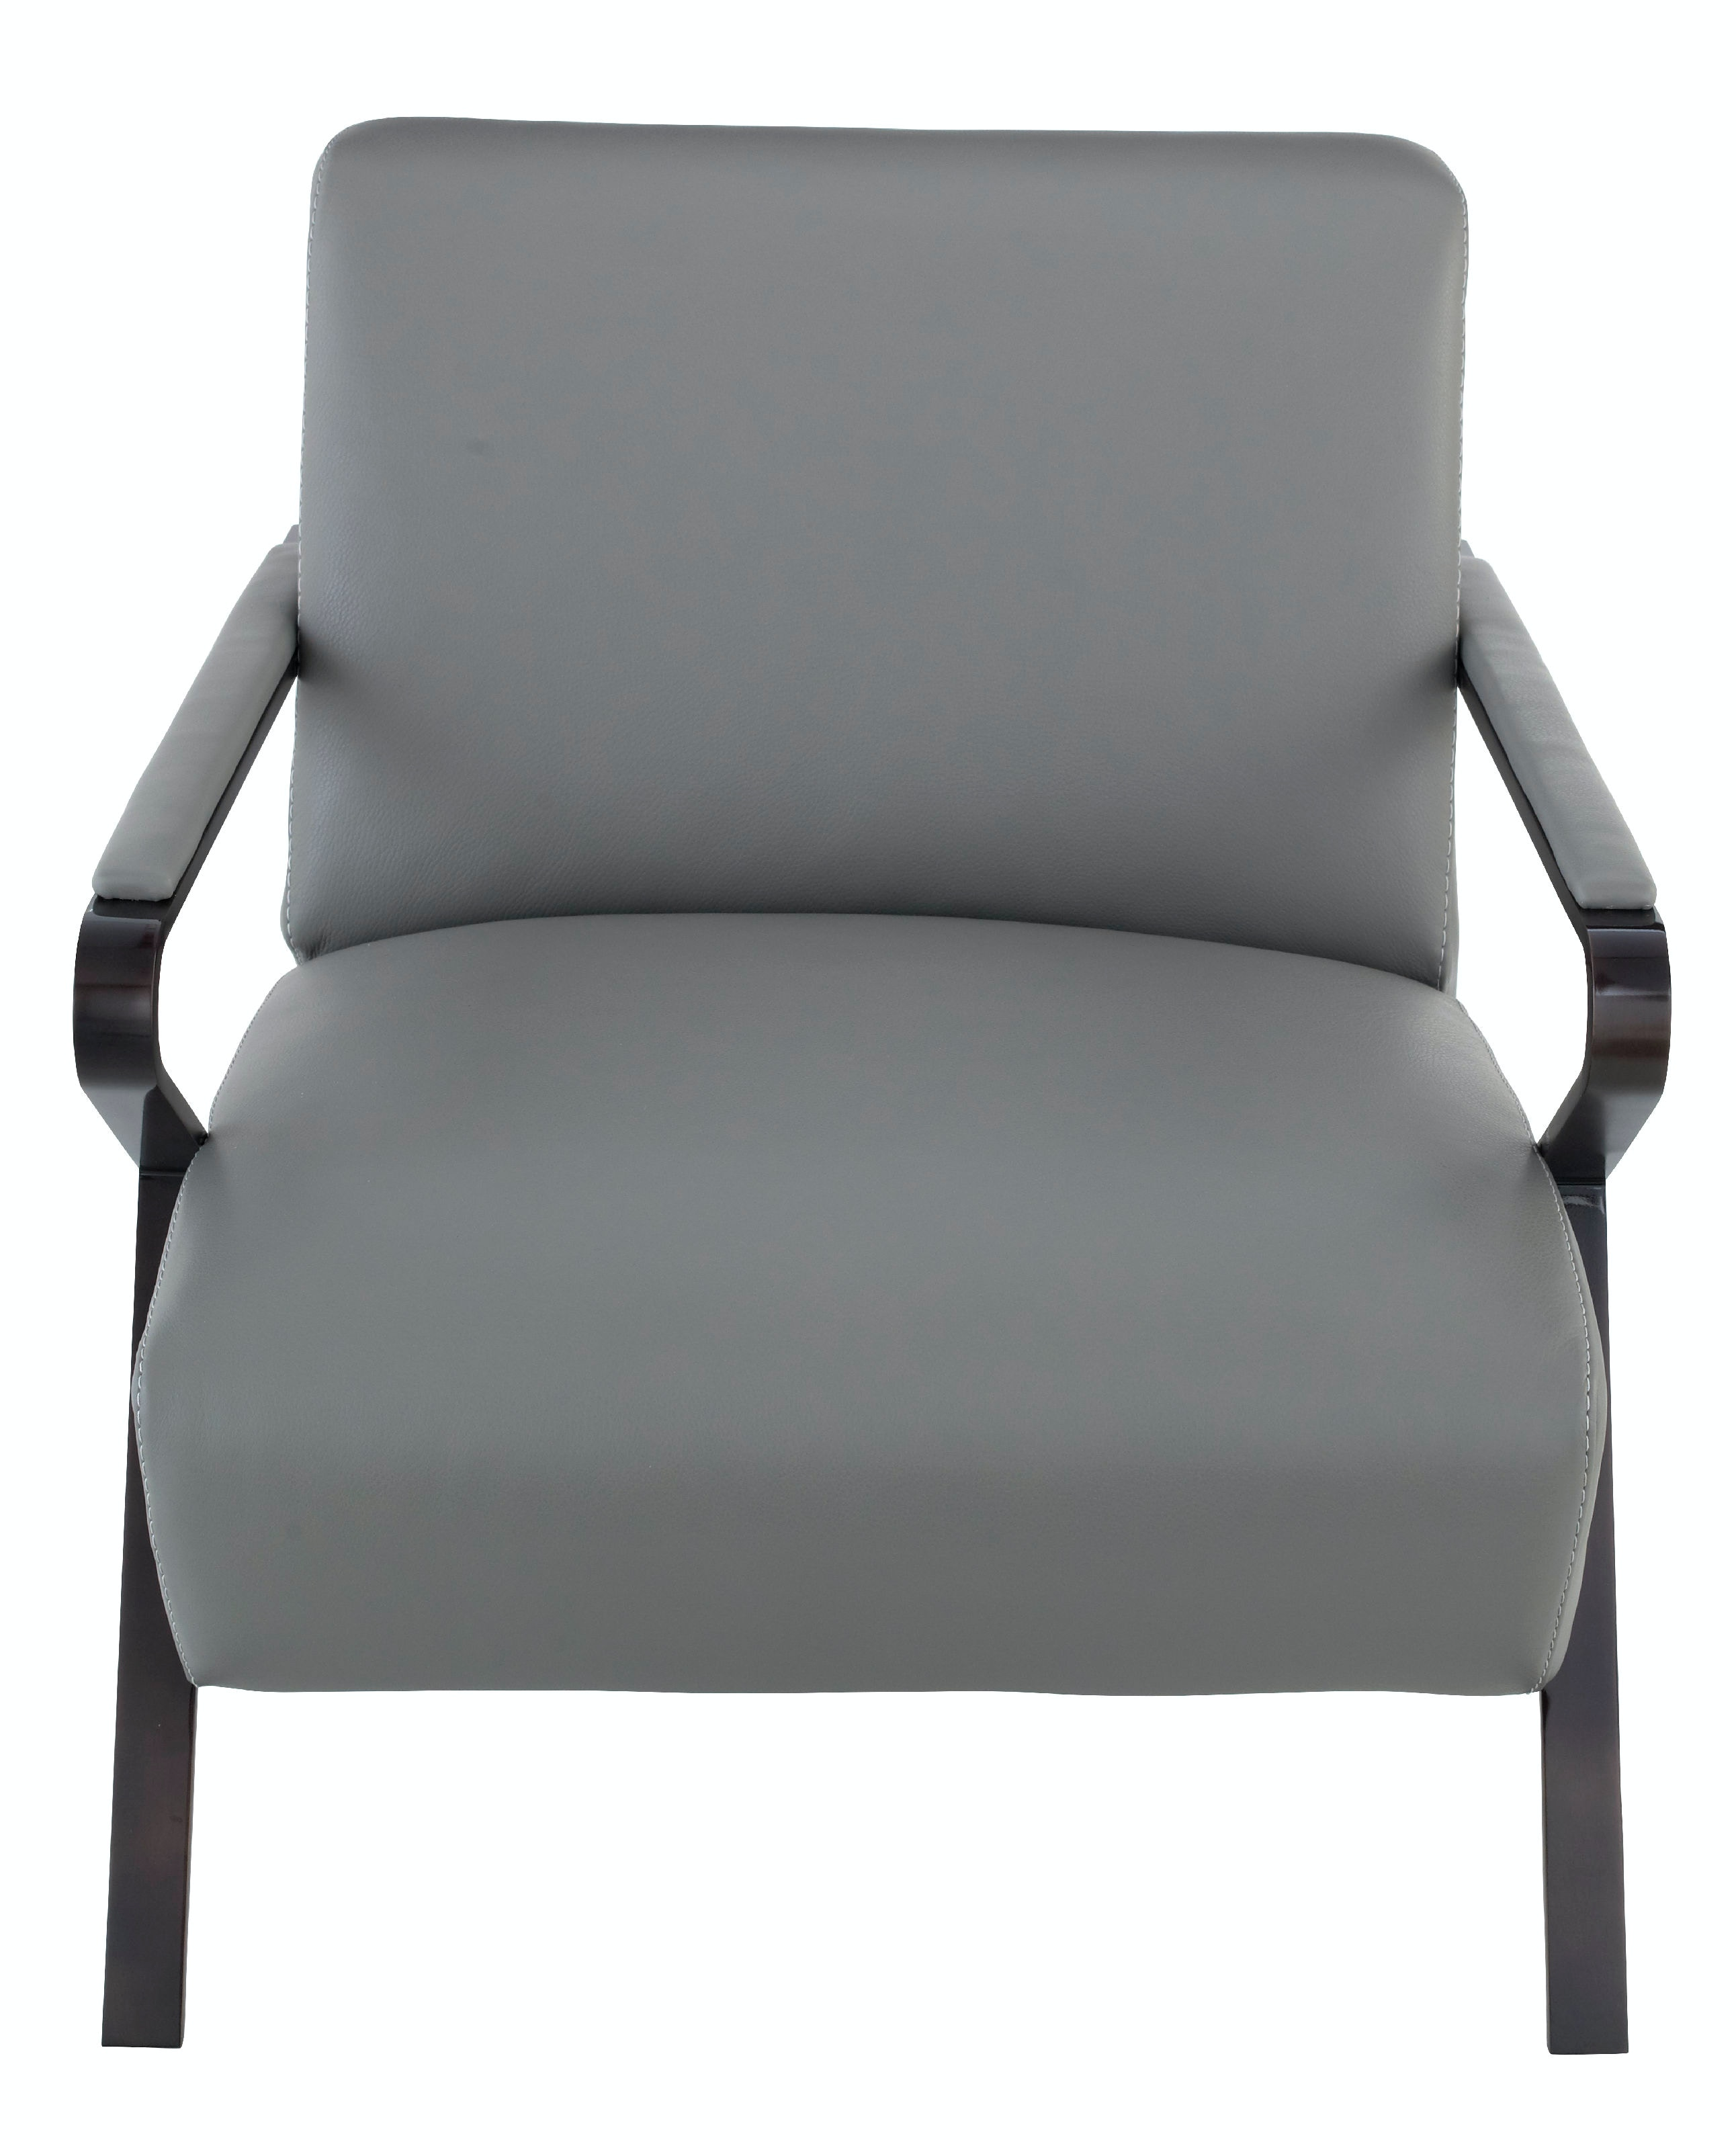 American Leather Chair OSC CHR ST